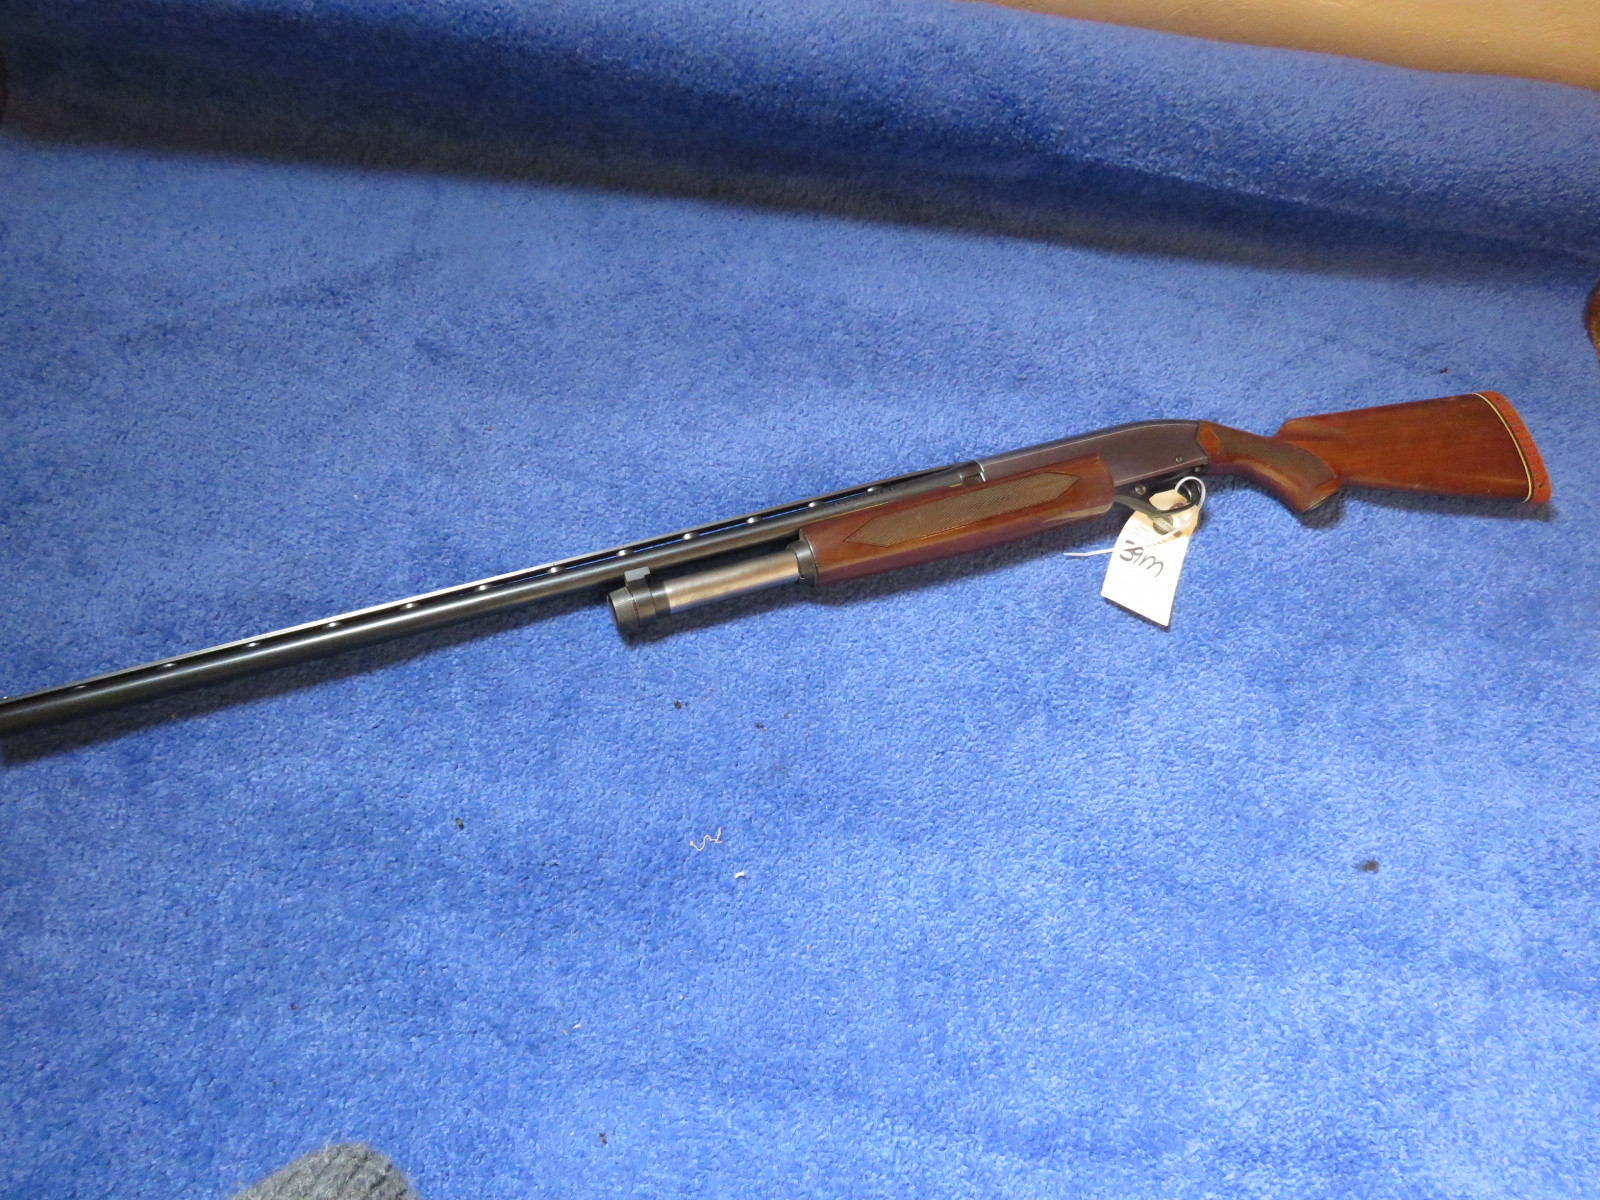 Winchester Model 1200 20 Gauge Shotgun - Image 2